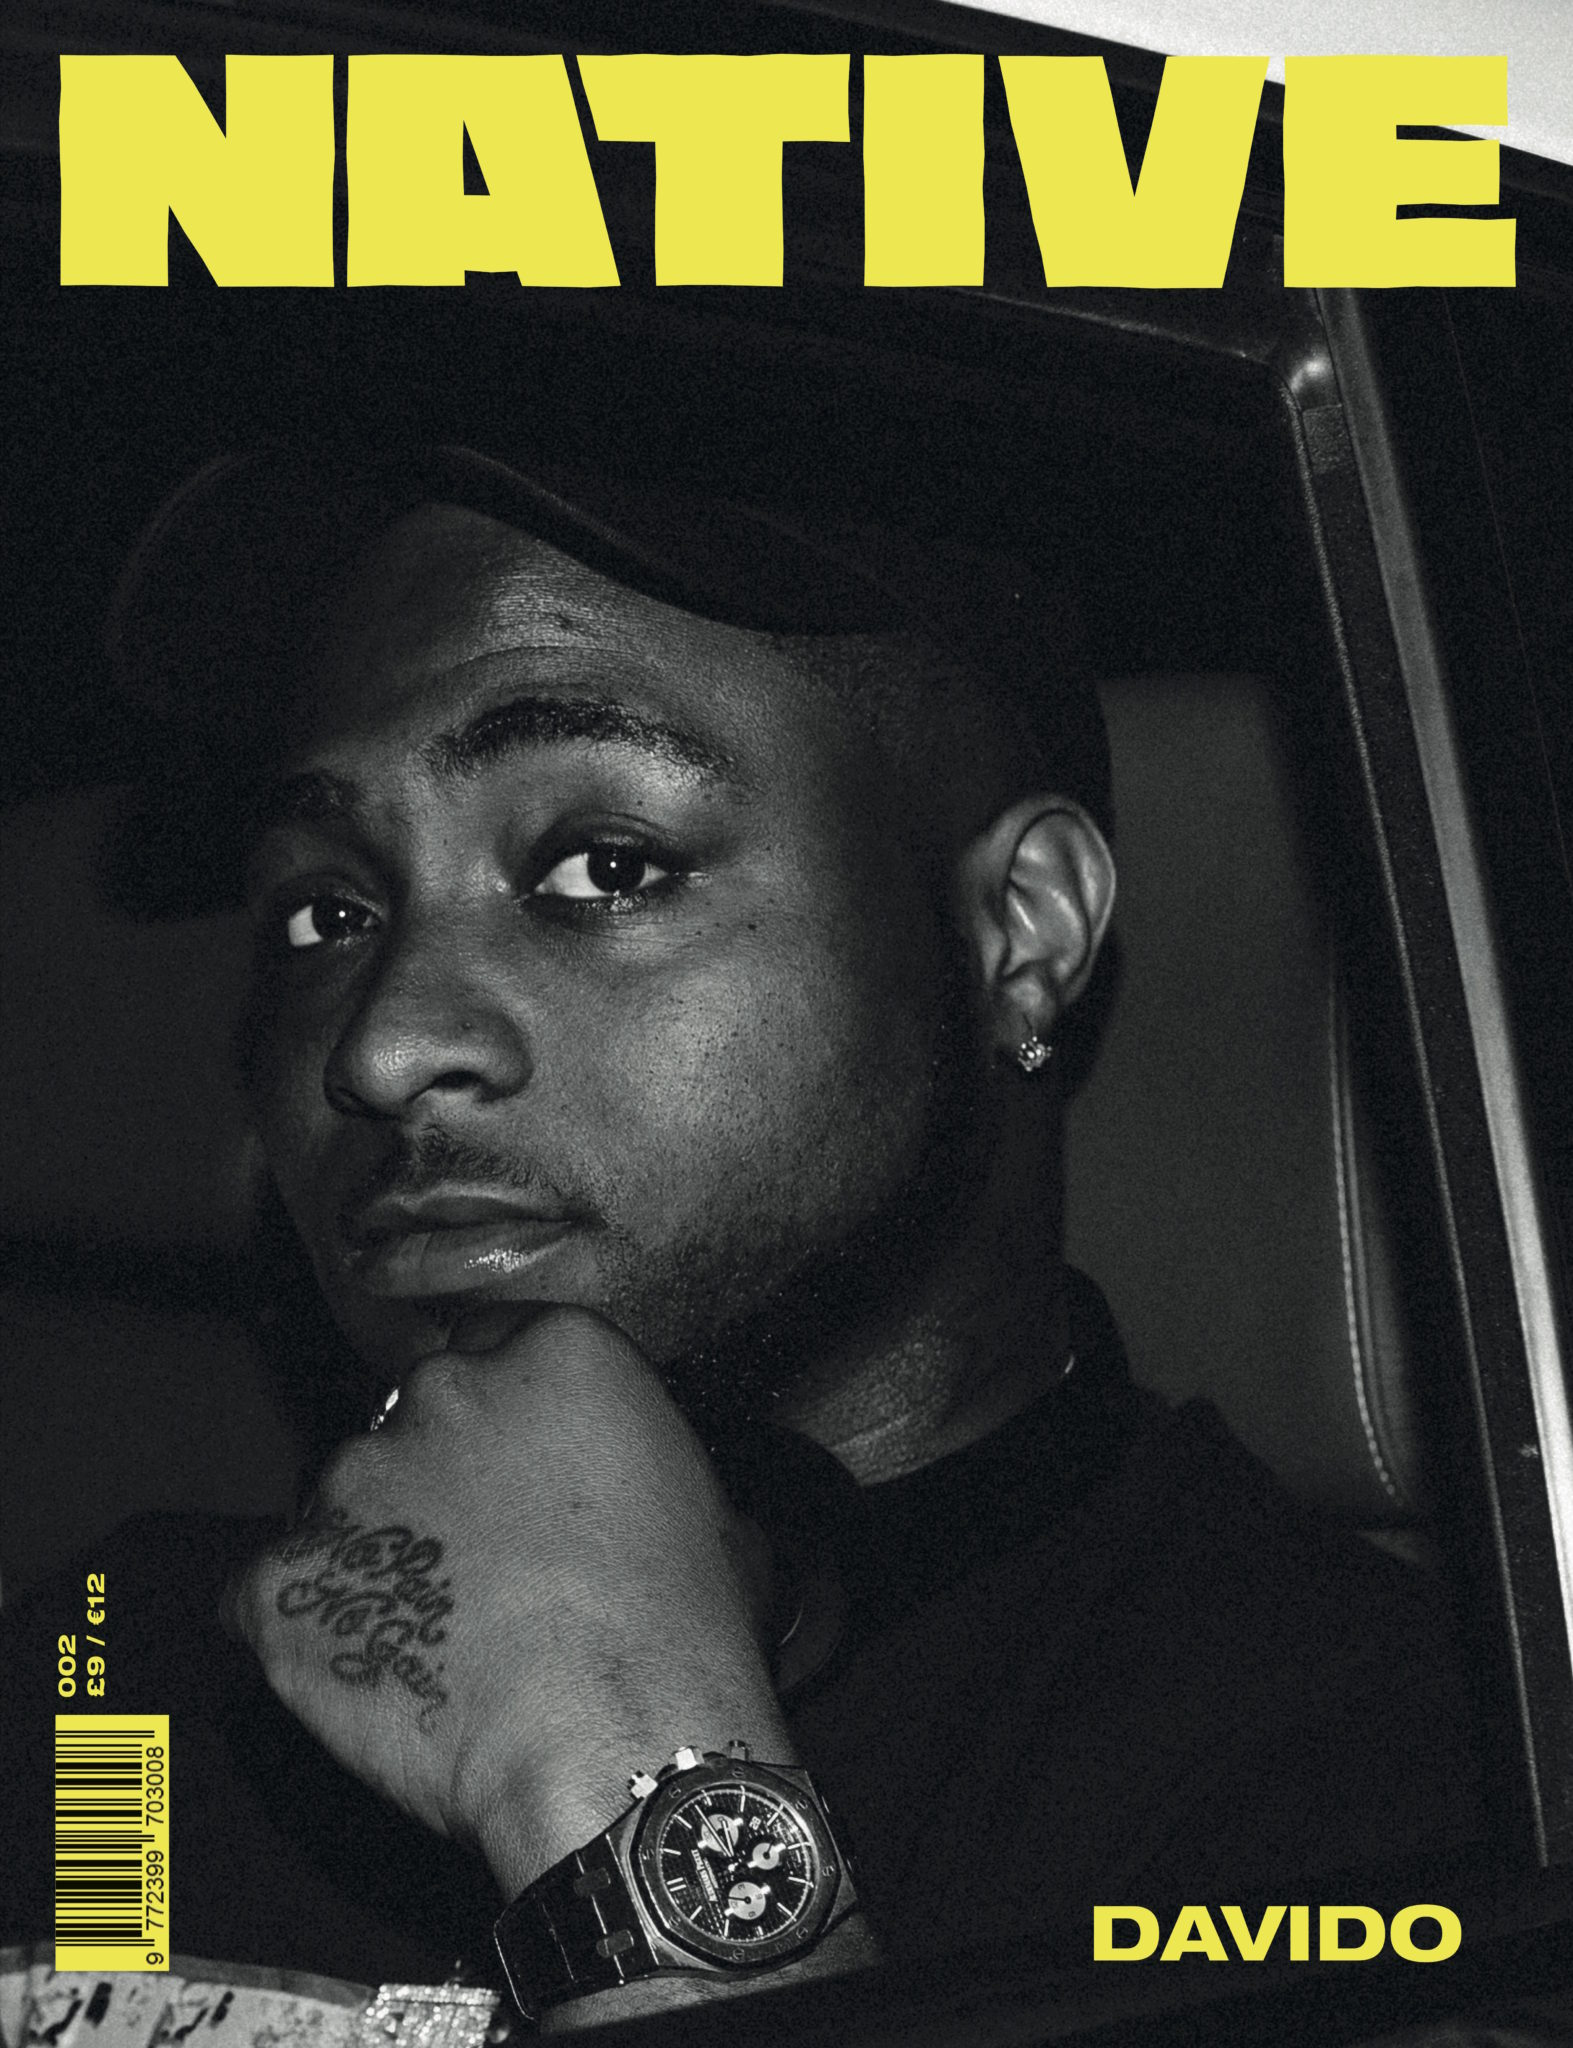 Davido Opens Up About How His Beef With Wizkid Ended In Latest Issue Of The Native Magazine